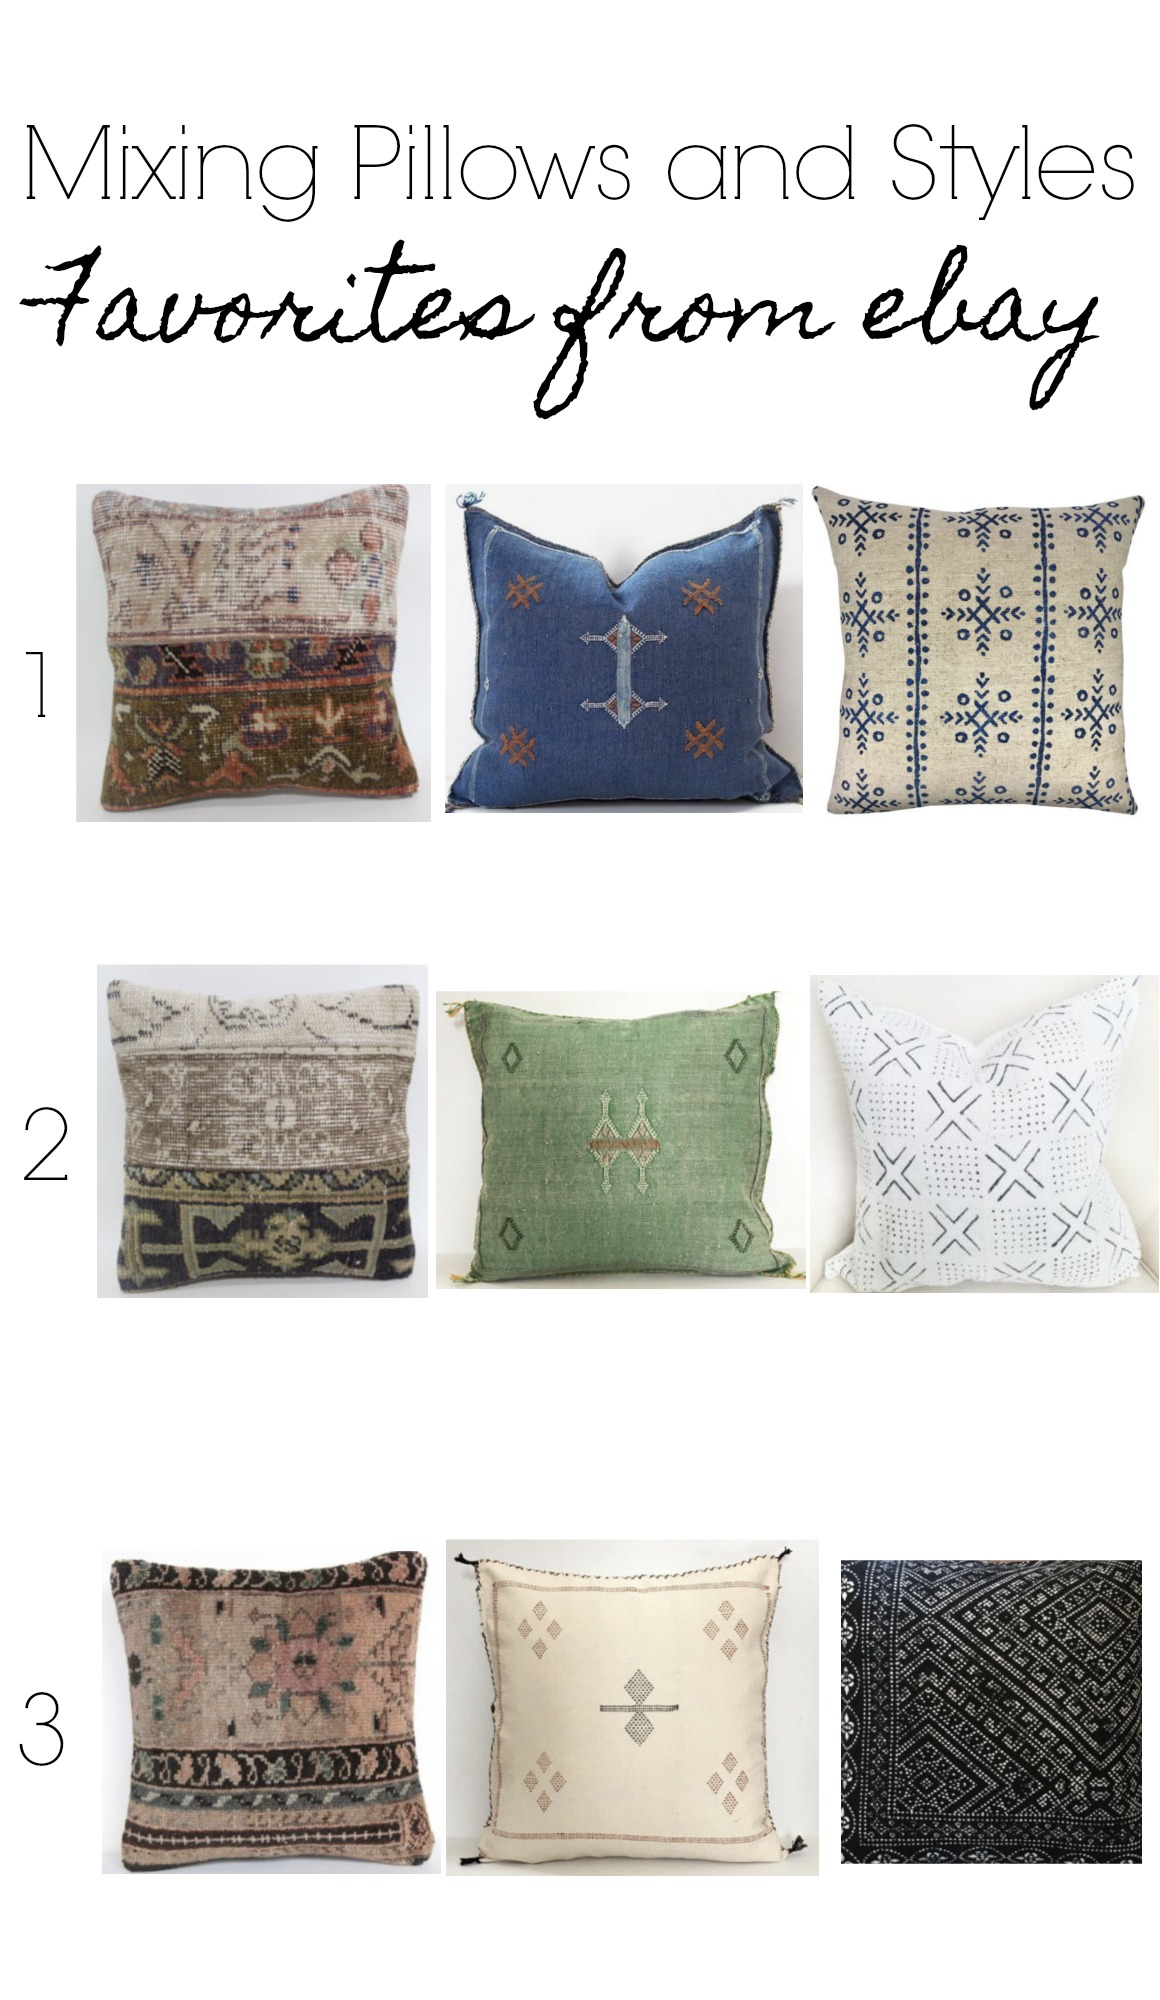 19eb5225 Below are a couple examples of Mixing Pillows and Styles with some  favorites from ebay